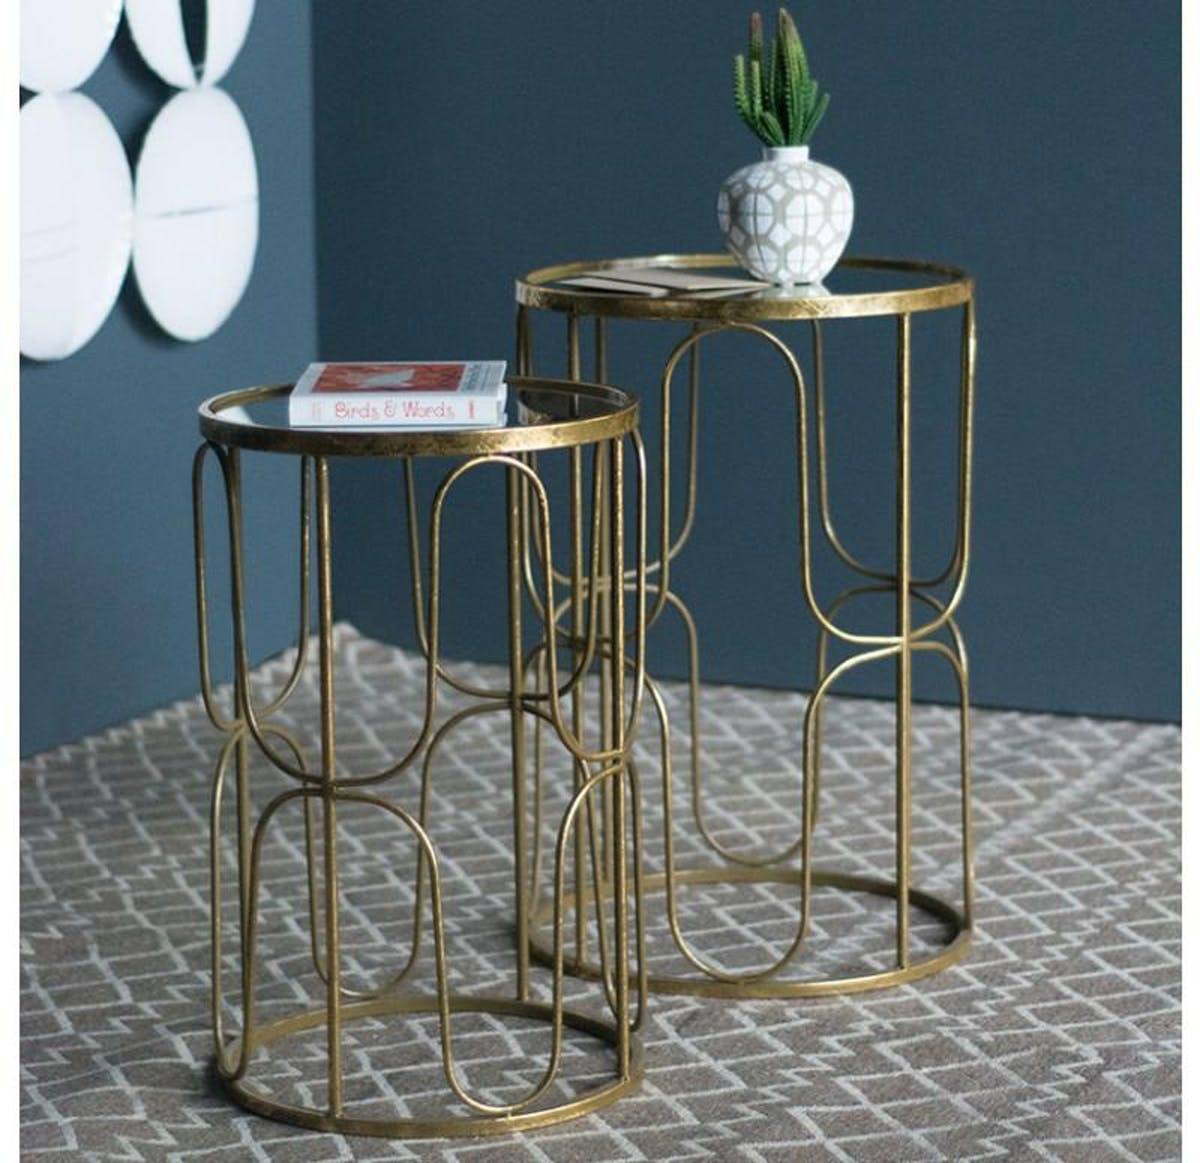 gold leaf design group society accent table set modish tables pool umbrellas bunnings white wicker furniture pier one round quilted toppers timber trestle legs wood patio side